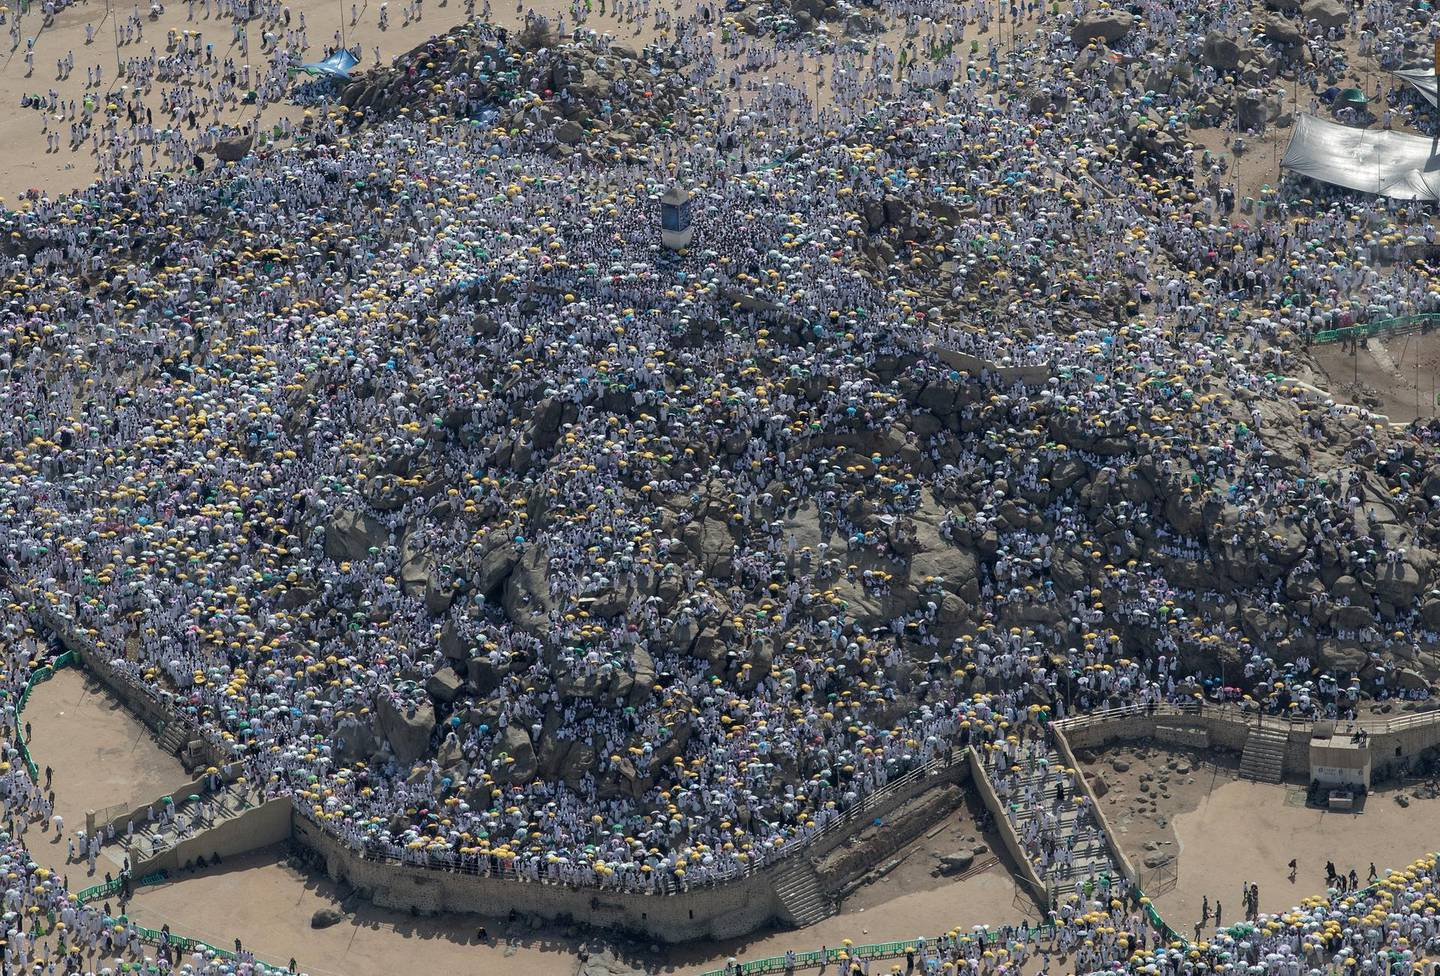 epaselect epa06959727 An aerial view of the Mount Arafat, where thousands Muslim worshippers gather during the Hajj pilgrimage, near Mecca, Saudi Arabia, 20 August 2018. Around 2.5 million Muslims are expected to attend this year's Hajj pilgrimage, which is highlighted by the Day of Arafah, one day prior to Eid al-Adha. Eid al-Adha is the holiest of the two Muslims holidays celebrated each year, it marks the yearly Muslim pilgrimage (Hajj) to visit Mecca, the holiest place in Islam.  EPA/SEDAT SUNA